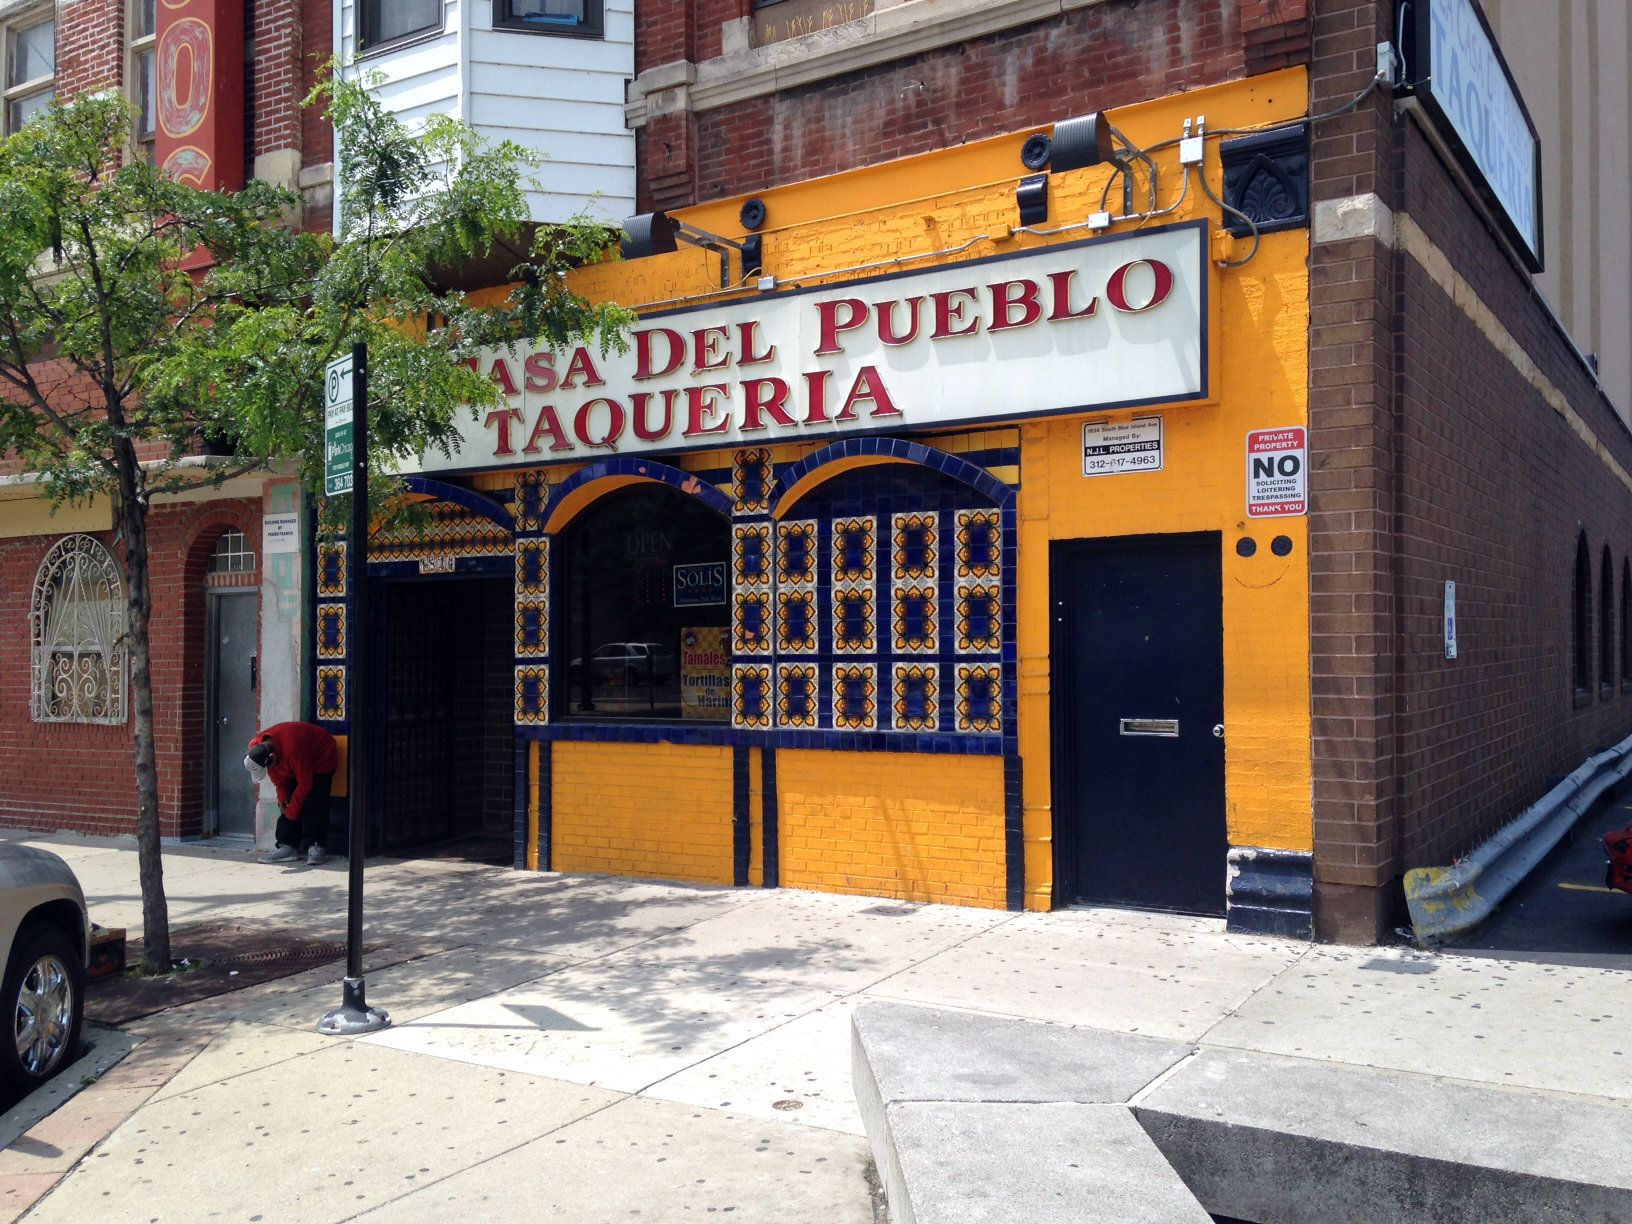 A day of dining for 10 in chicago eater chicago for Casa de pueblo